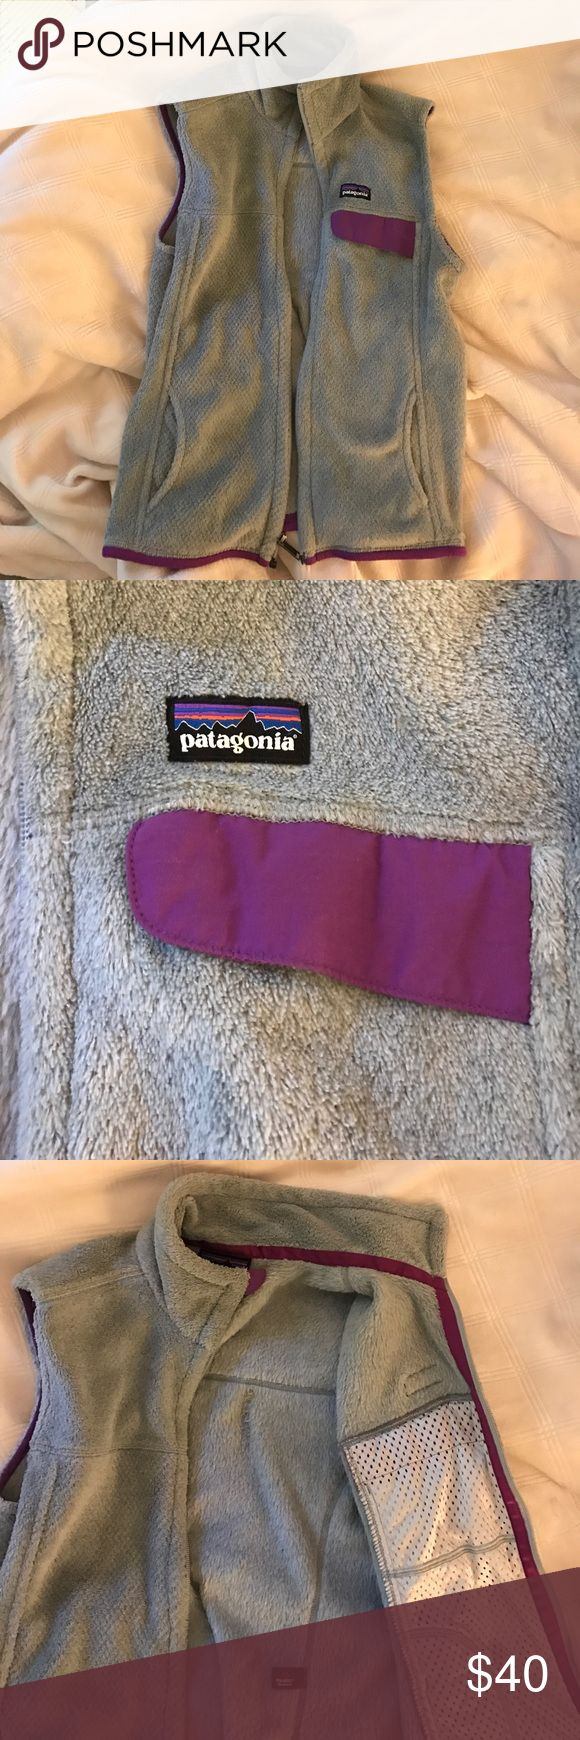 Patagonia Fleece Vest Grey with purple fleece vest. Excellent condition and perfect for a cool day! Patagonia Jackets & Coats Vests